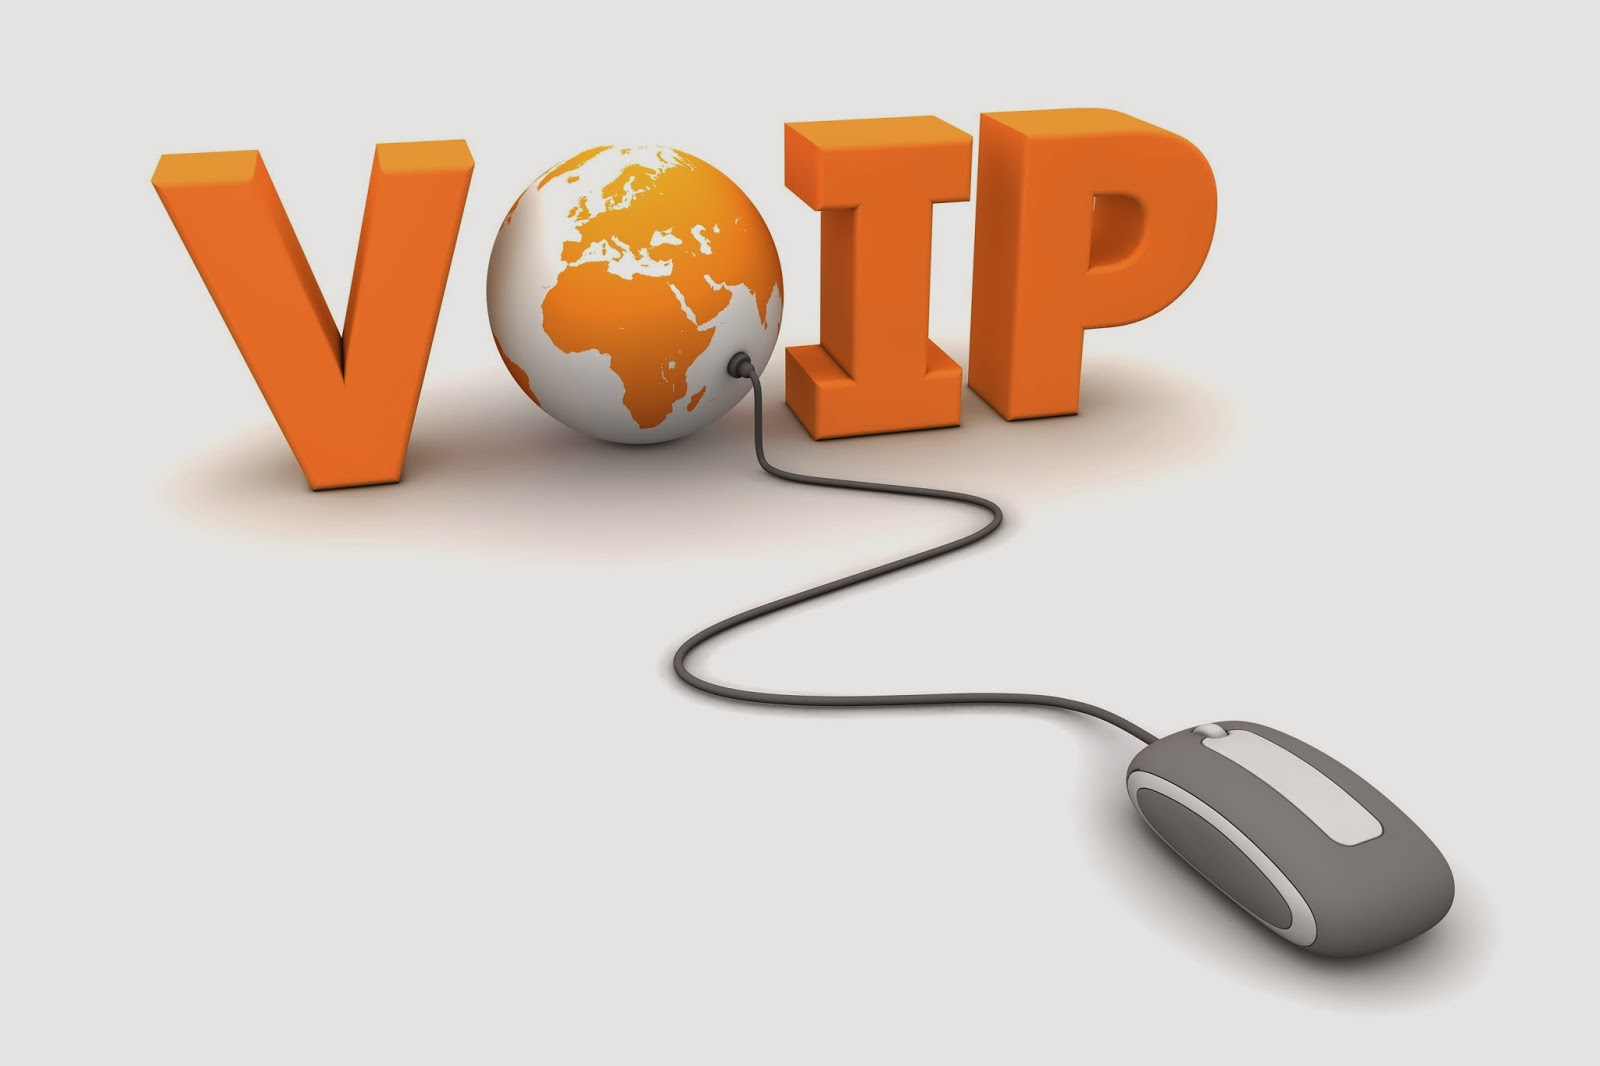 Should You Eliminate Landline After Implementing VoIP?